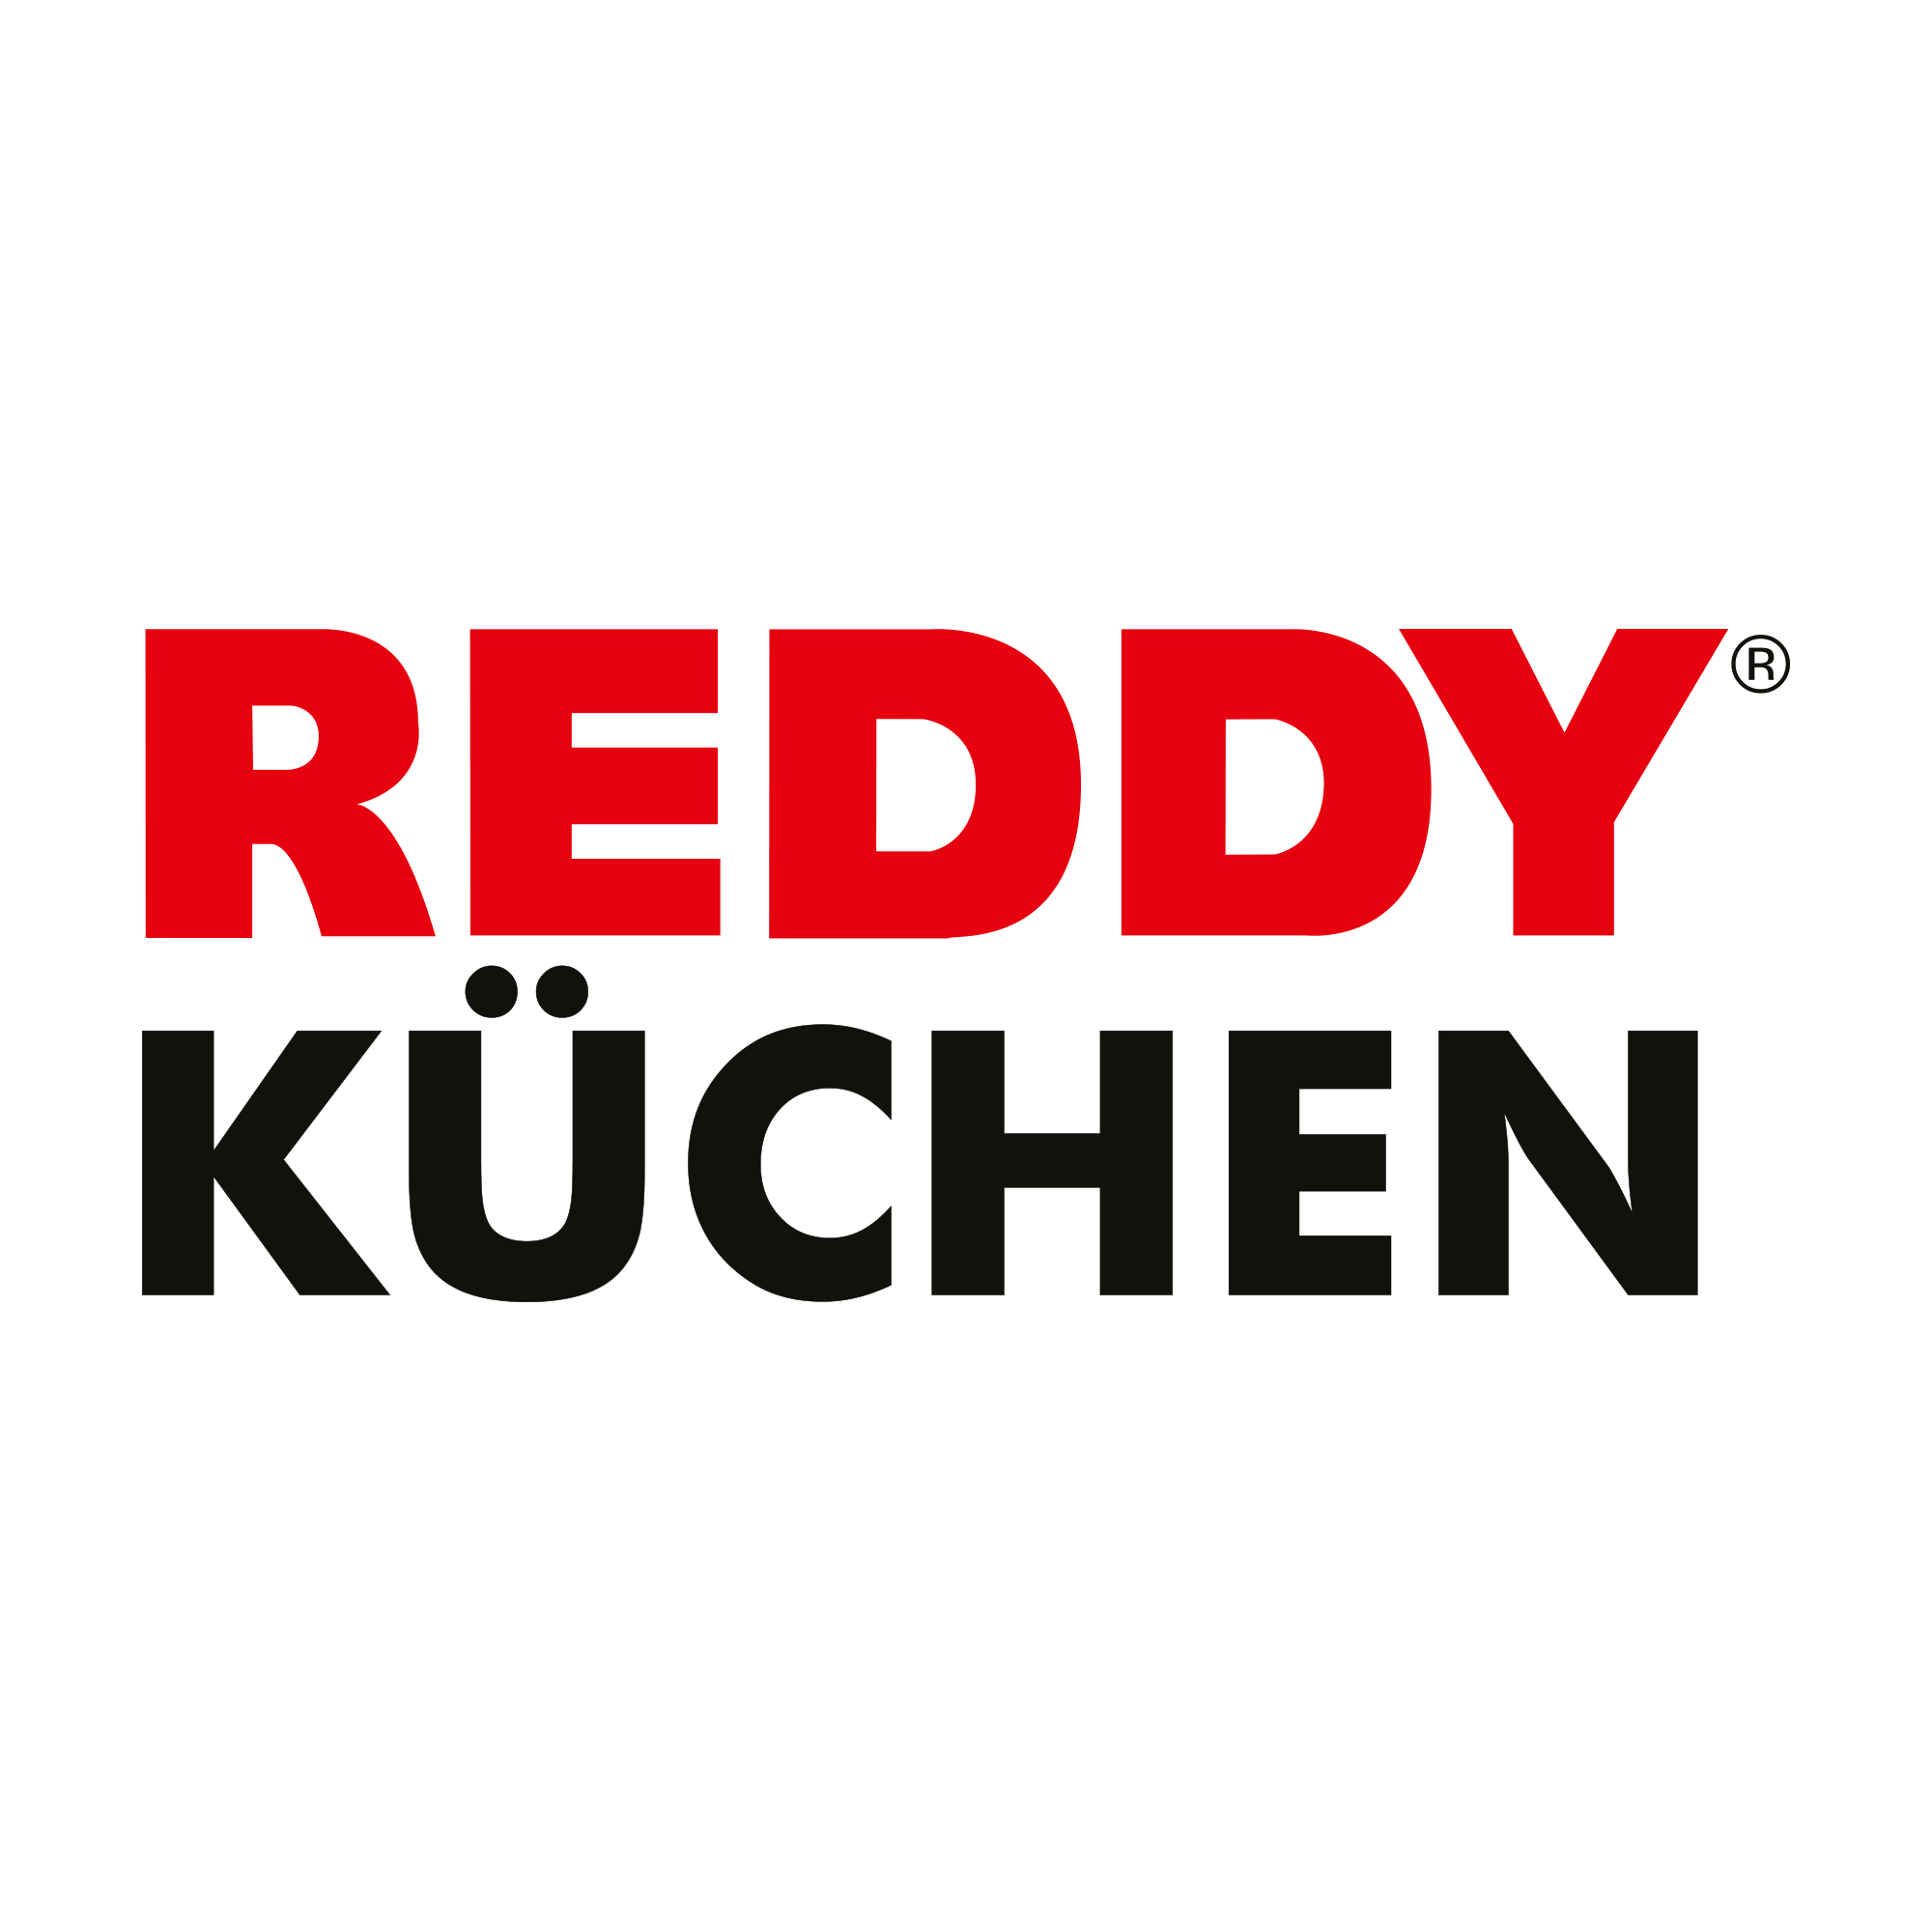 REDDY Küchen & ElektroWelt Internationale Franchise GmbH